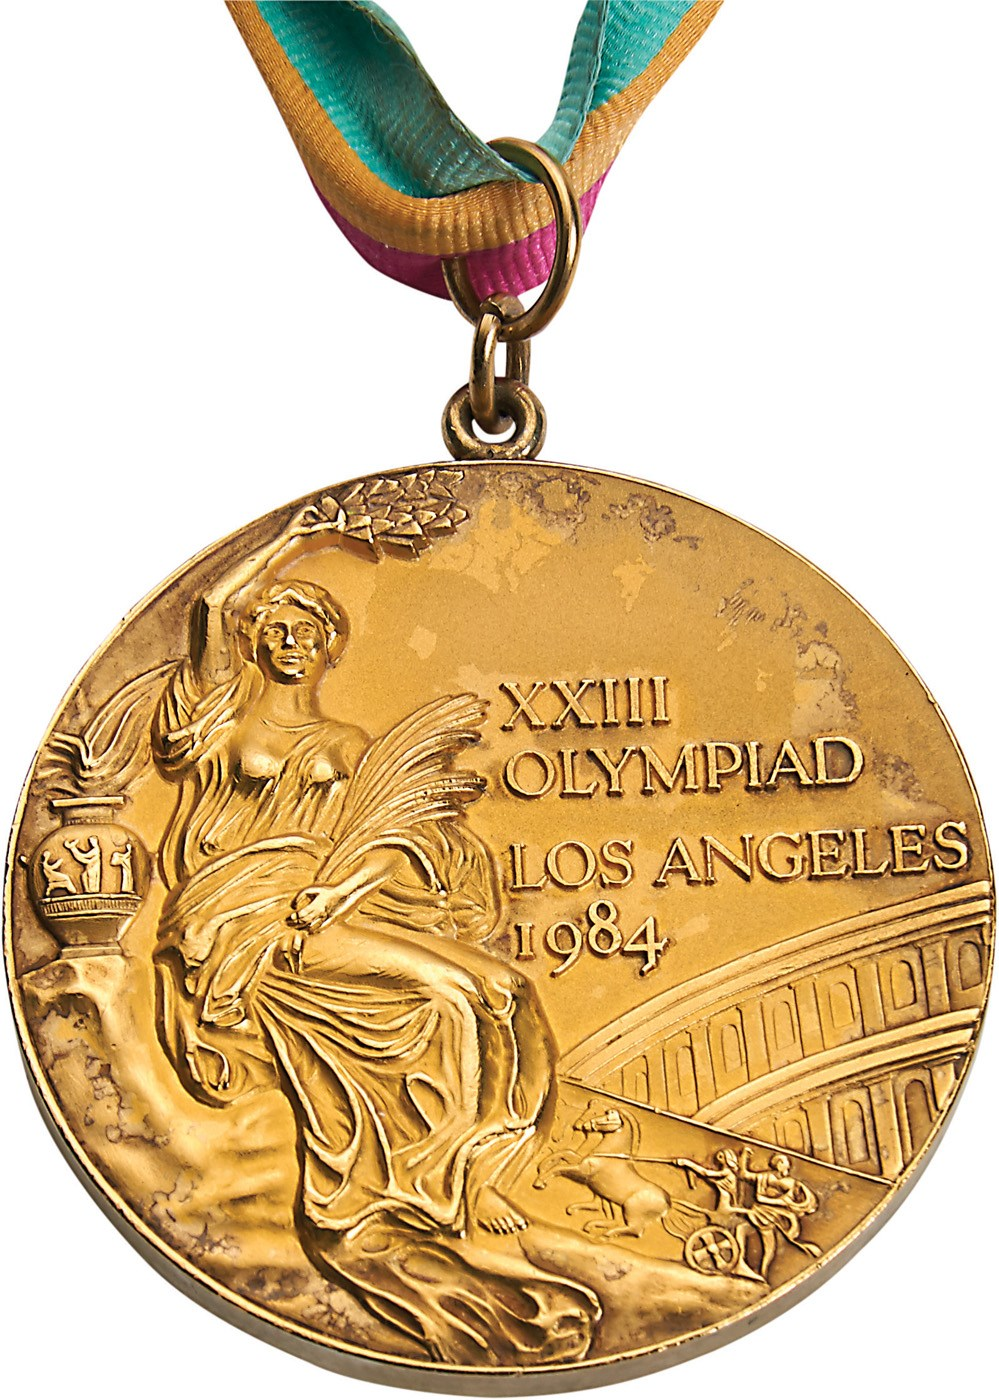 aadd4c9729a 1984 Los Angeles Olympics USA Basketball Gold Medal Presented to Teresa  Edwards